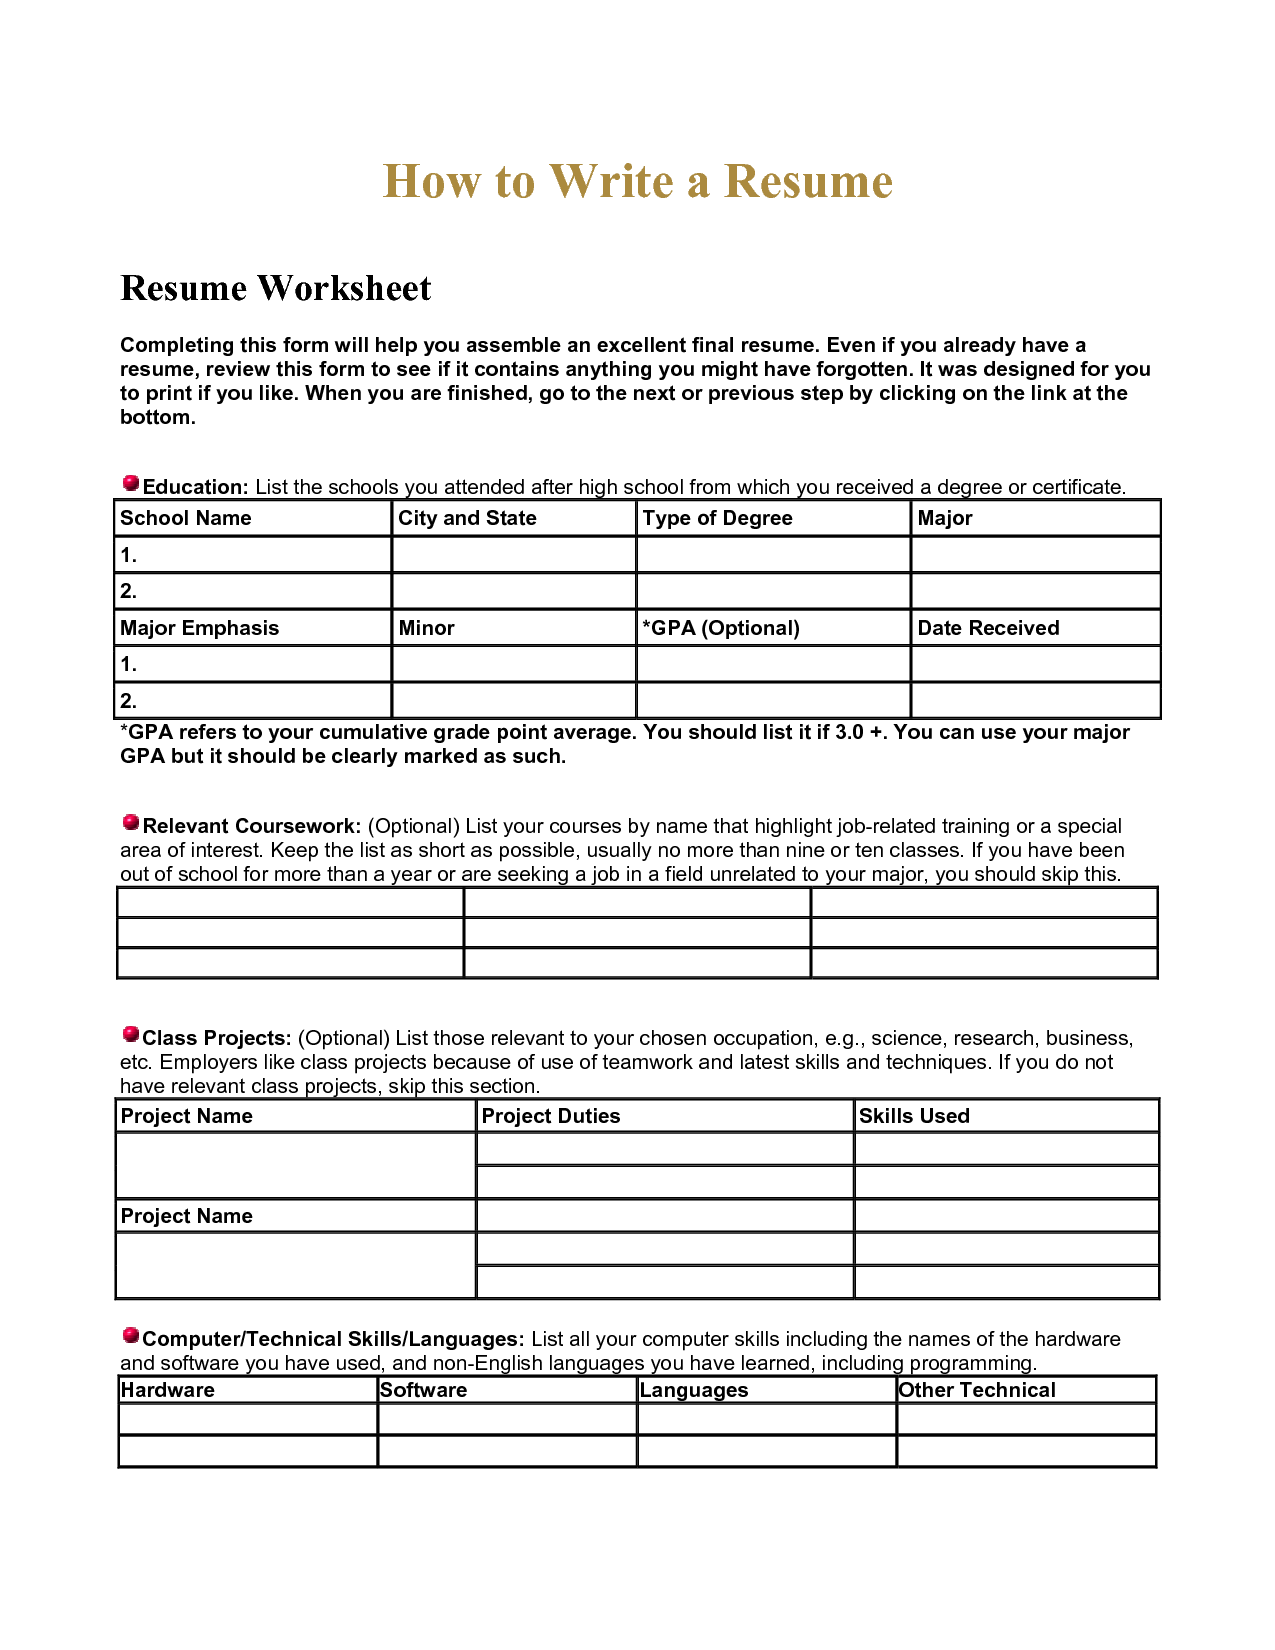 resume Resume For Teens high school resume worksheet using your academic experiences to build a resume